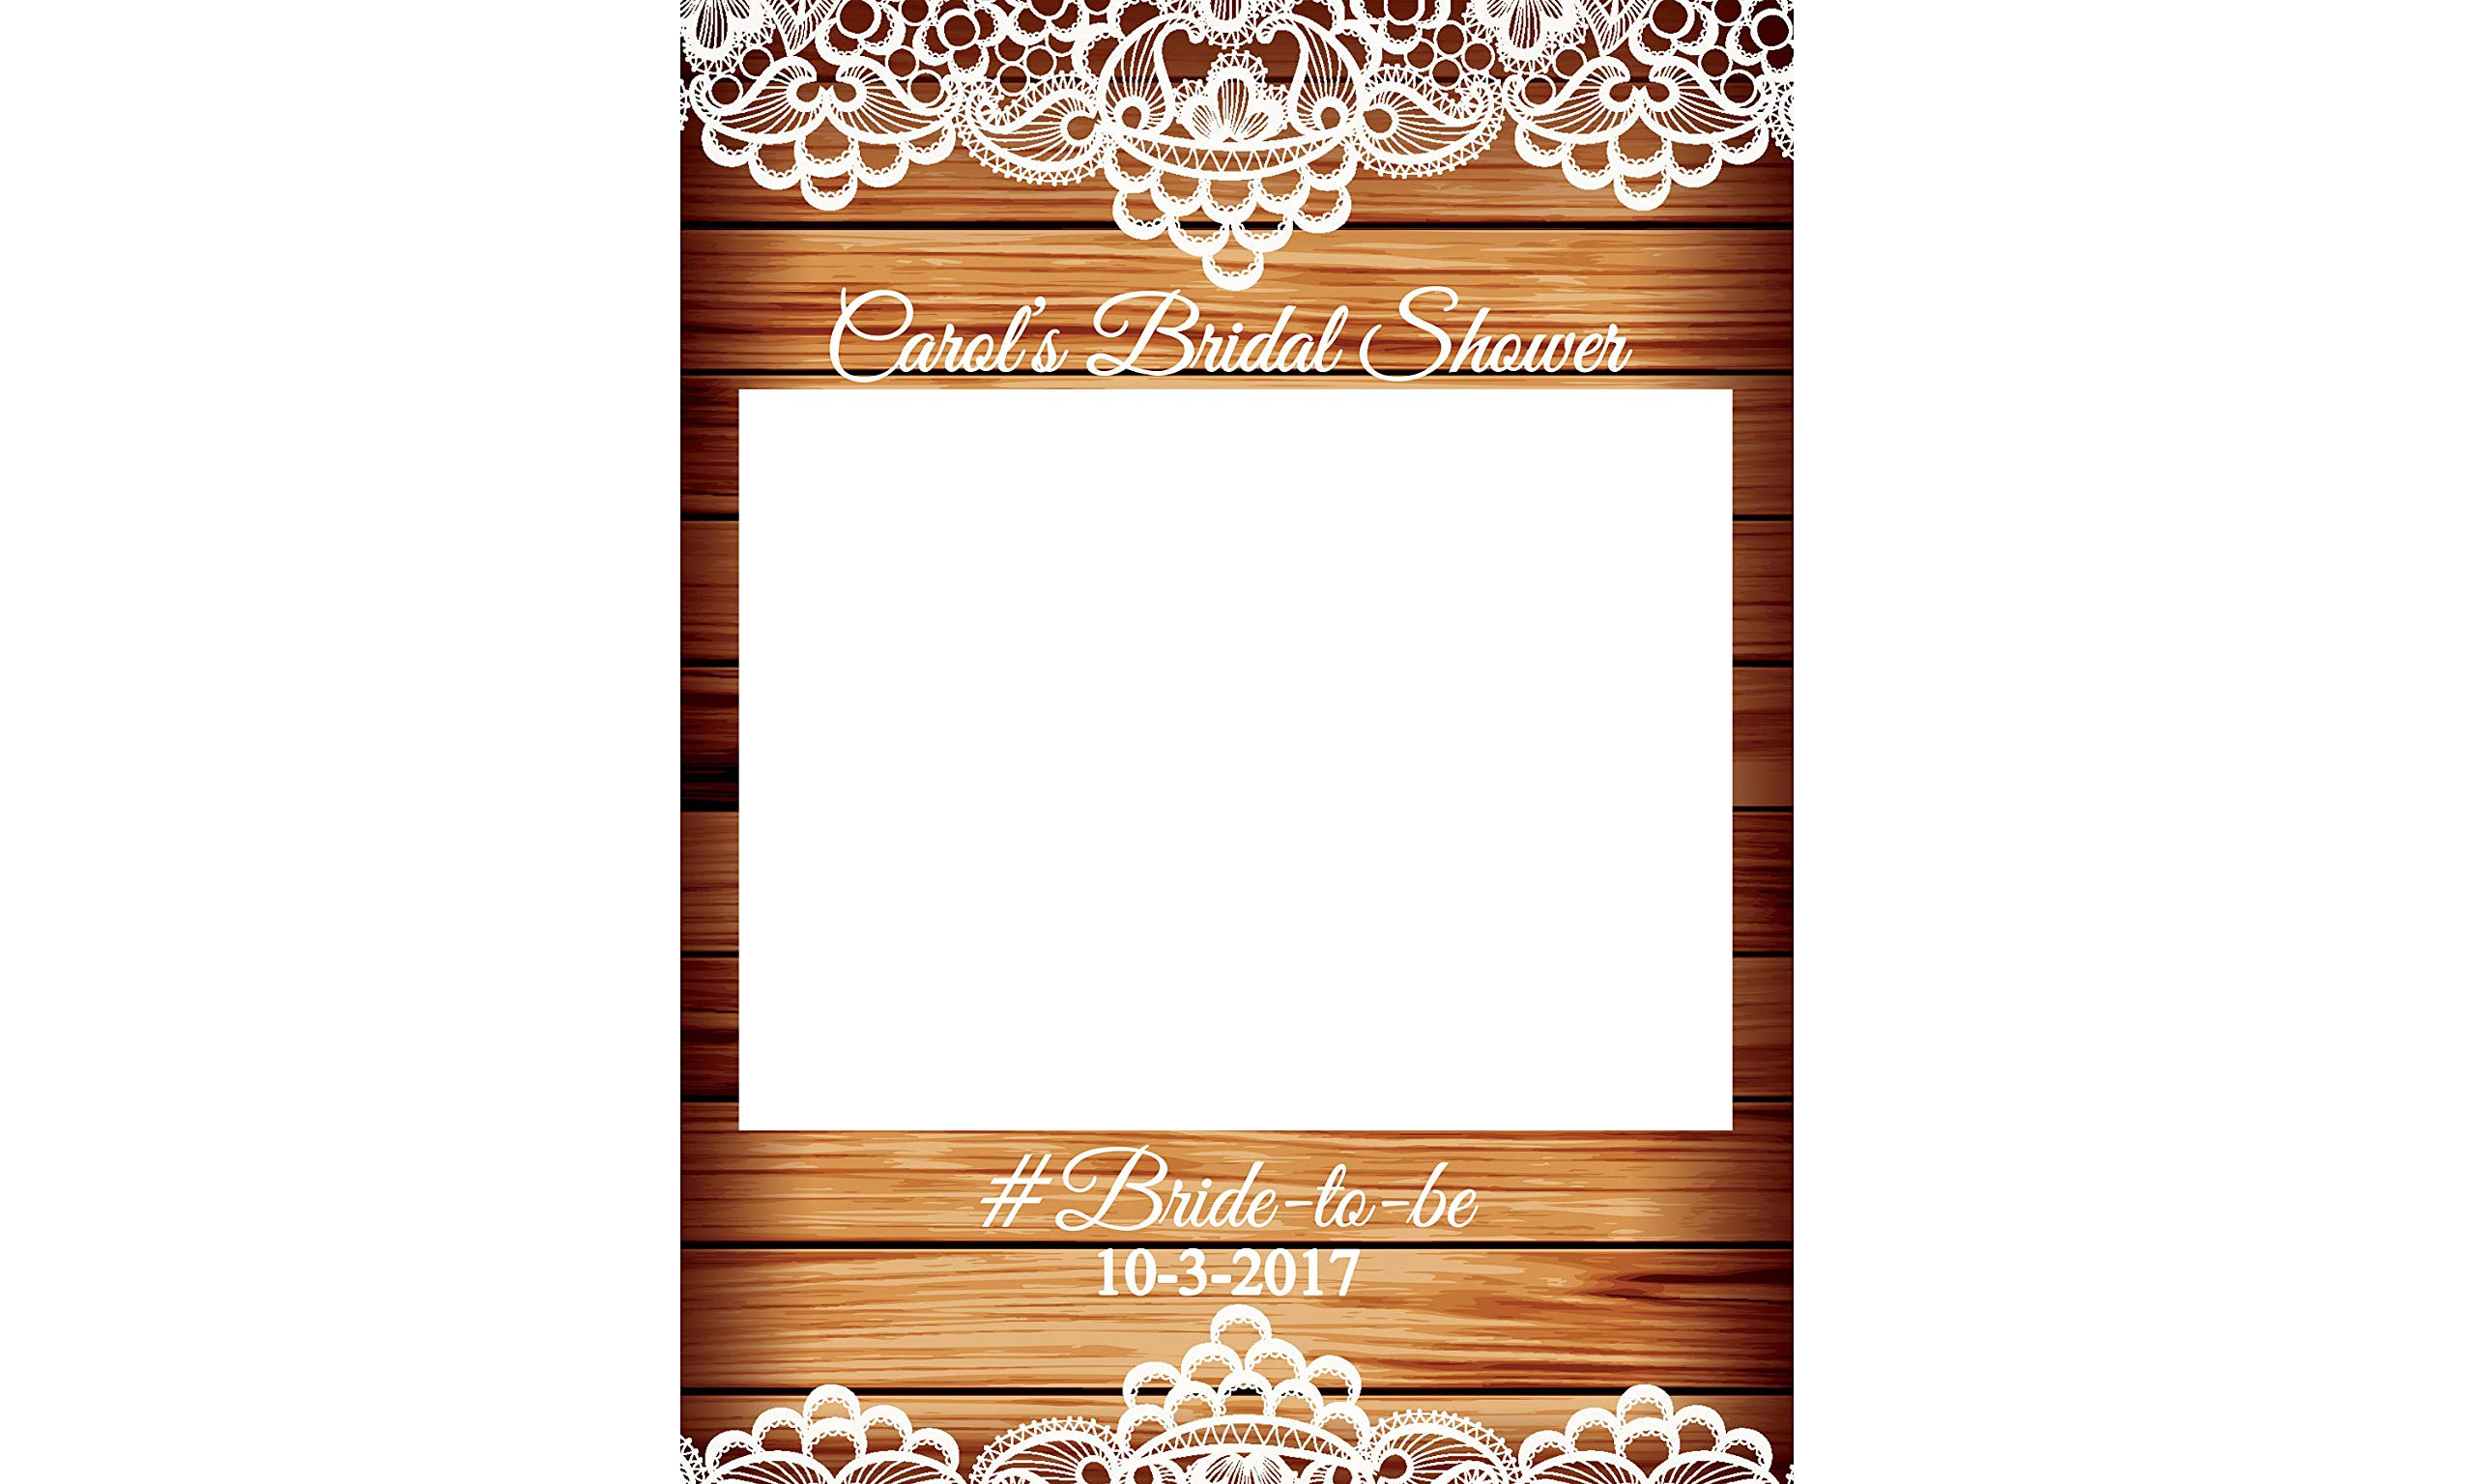 rustic wedding decorations lace bridal shower decorations photobooth selfie frame sizes 36x24 48x36 personalized photo prop